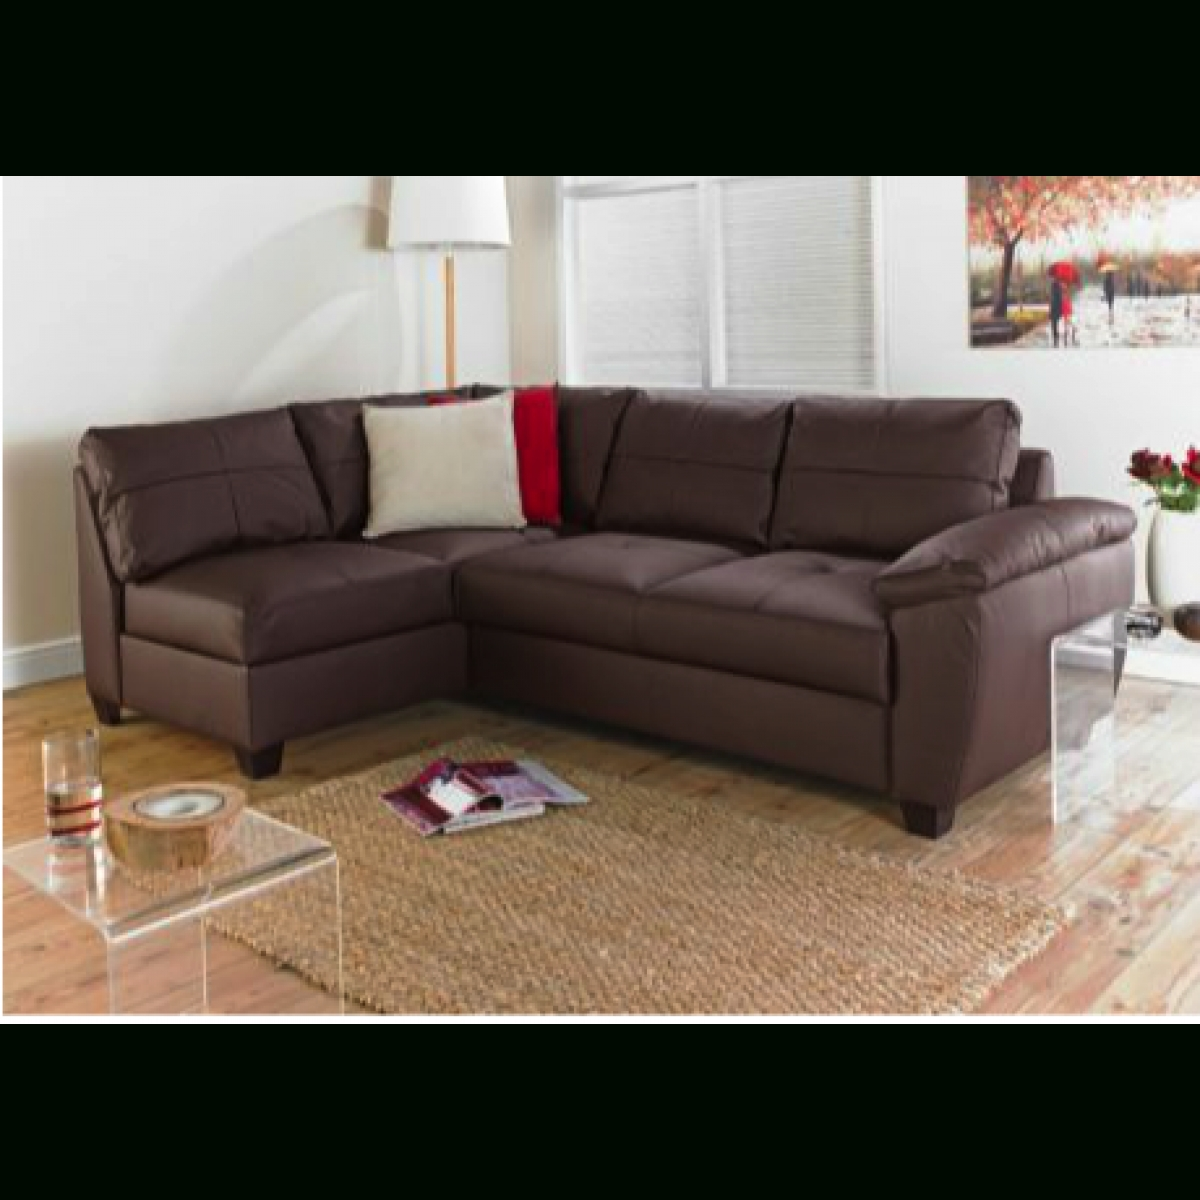 Fernando Leather Left Hand Sofa Bed Corner Group – Chocolate Intended For Leather Corner Sofa Bed (Image 8 of 20)